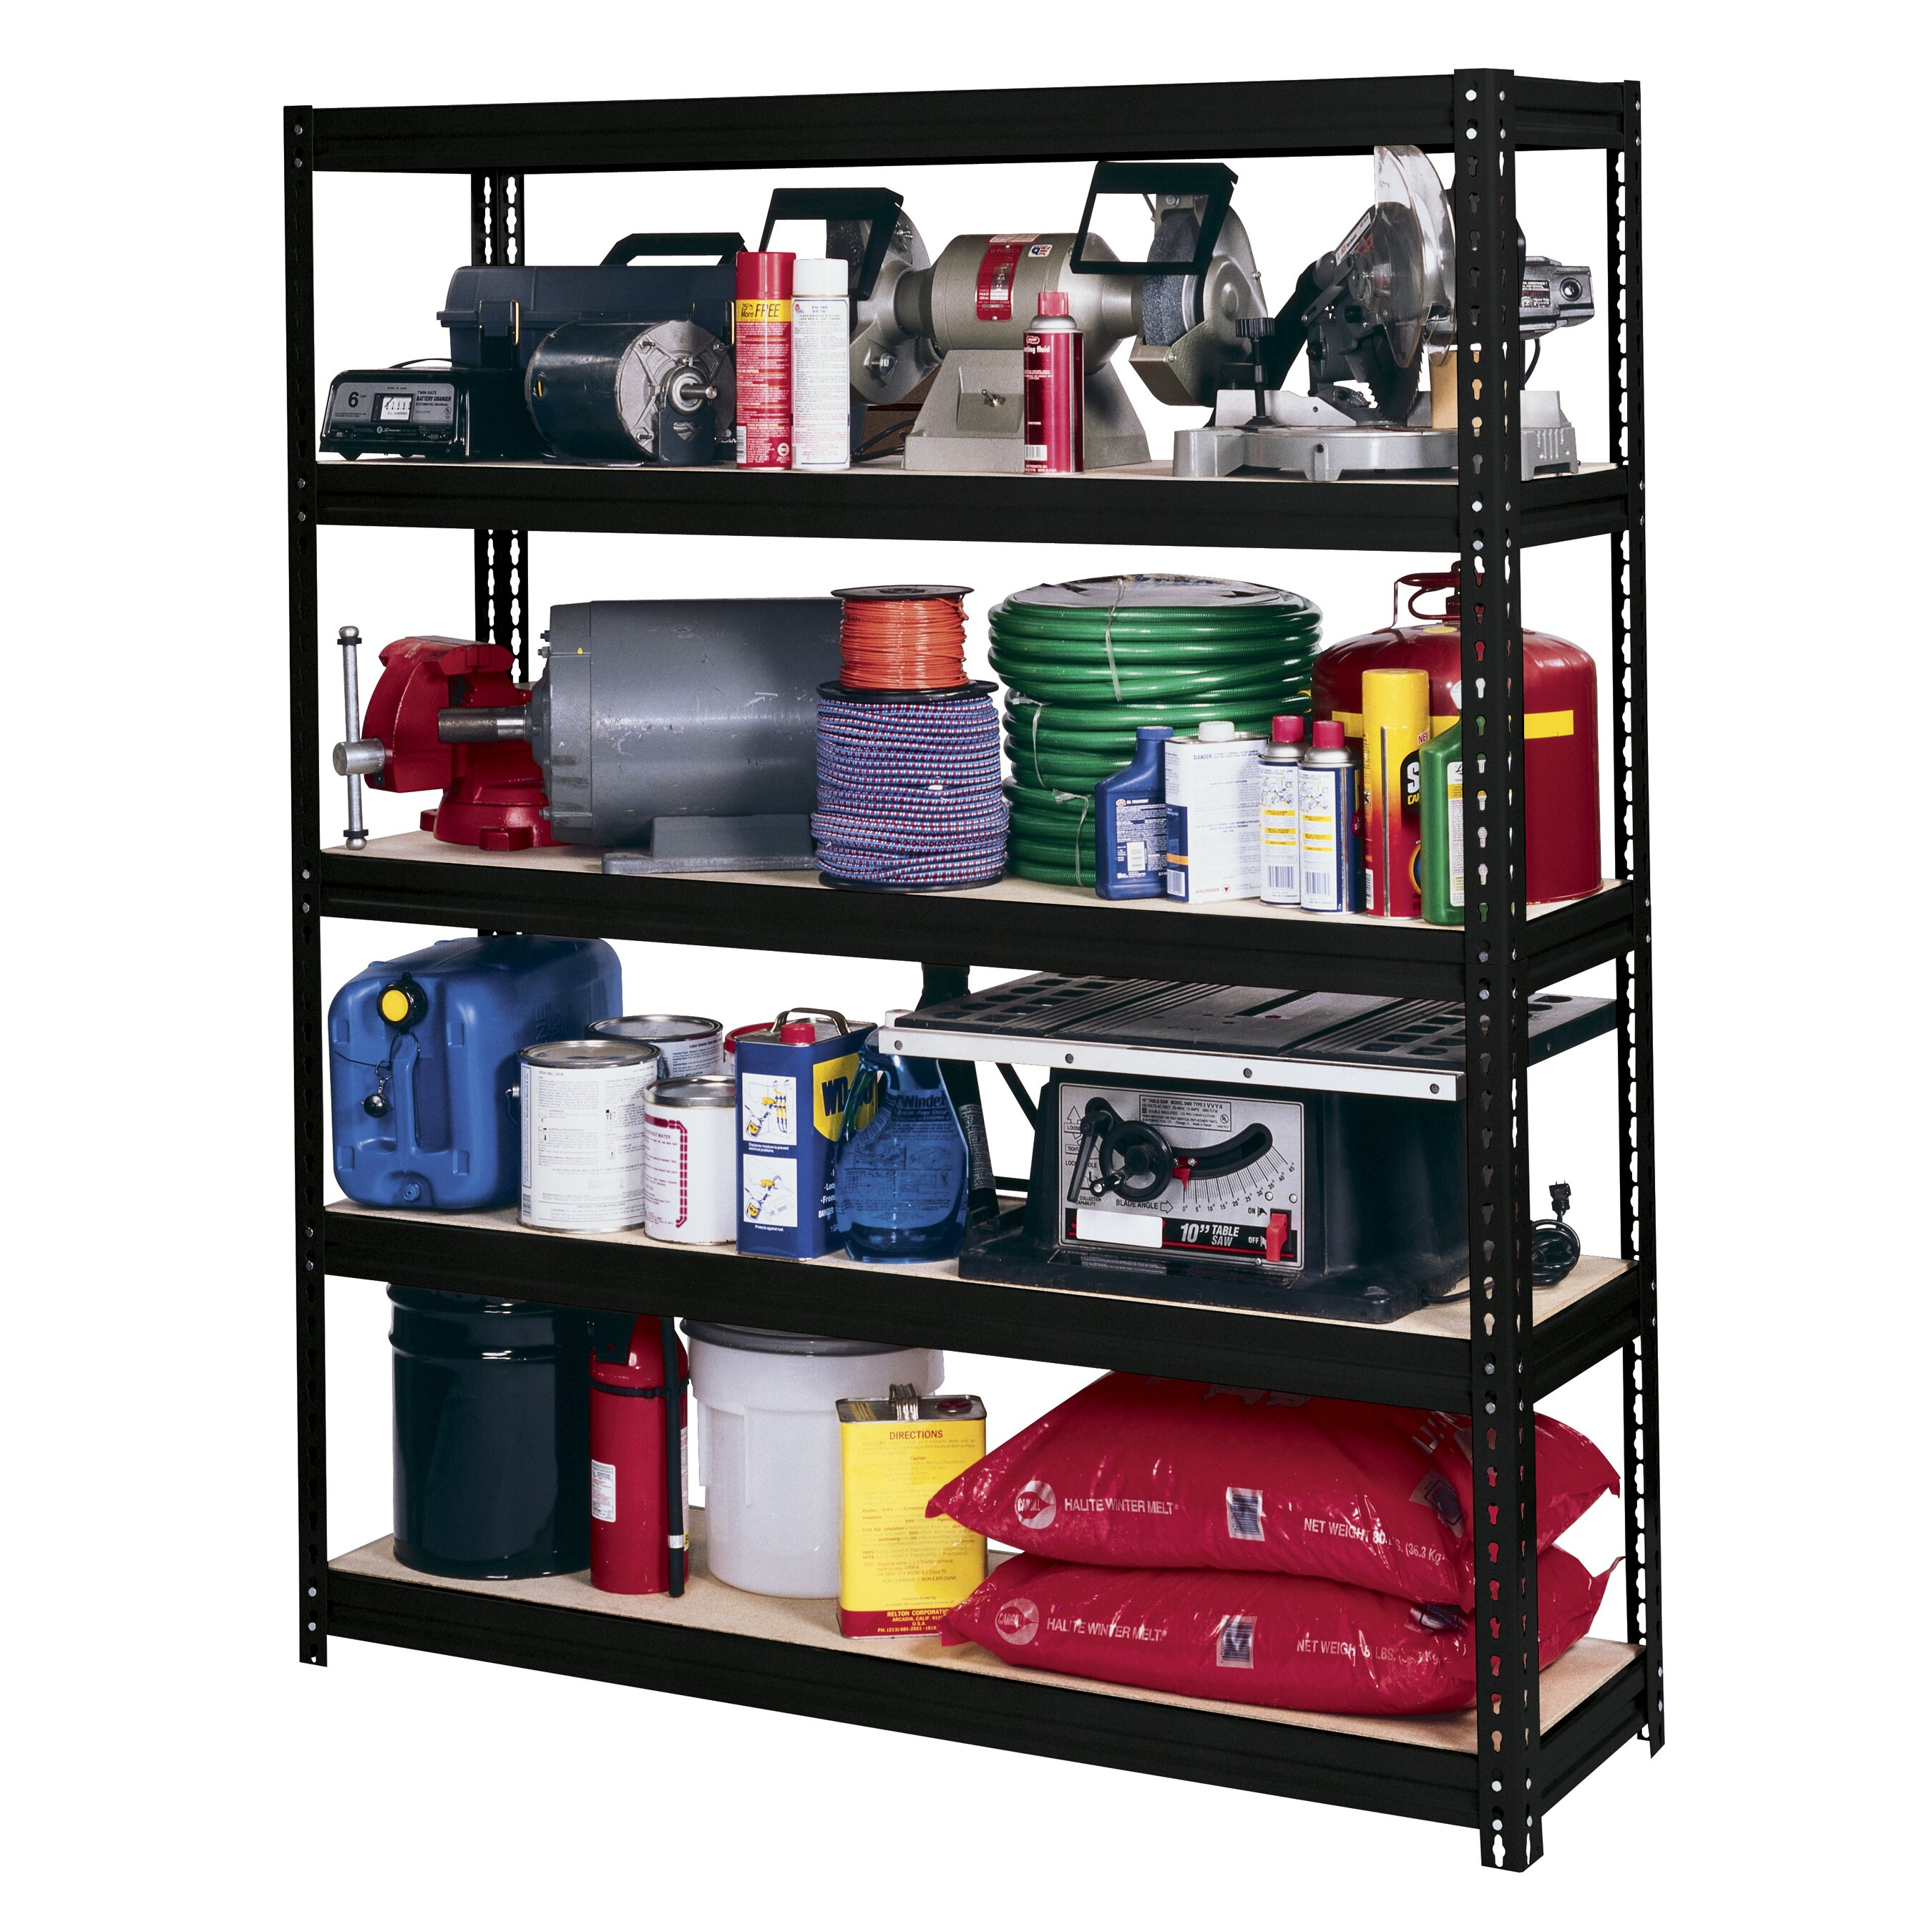 Edsal 5 shelf heavy duty steel shelving - Edsal Sandusky Modular Ultra Rack 72 Quot H 5 Shelf Shelving Unit